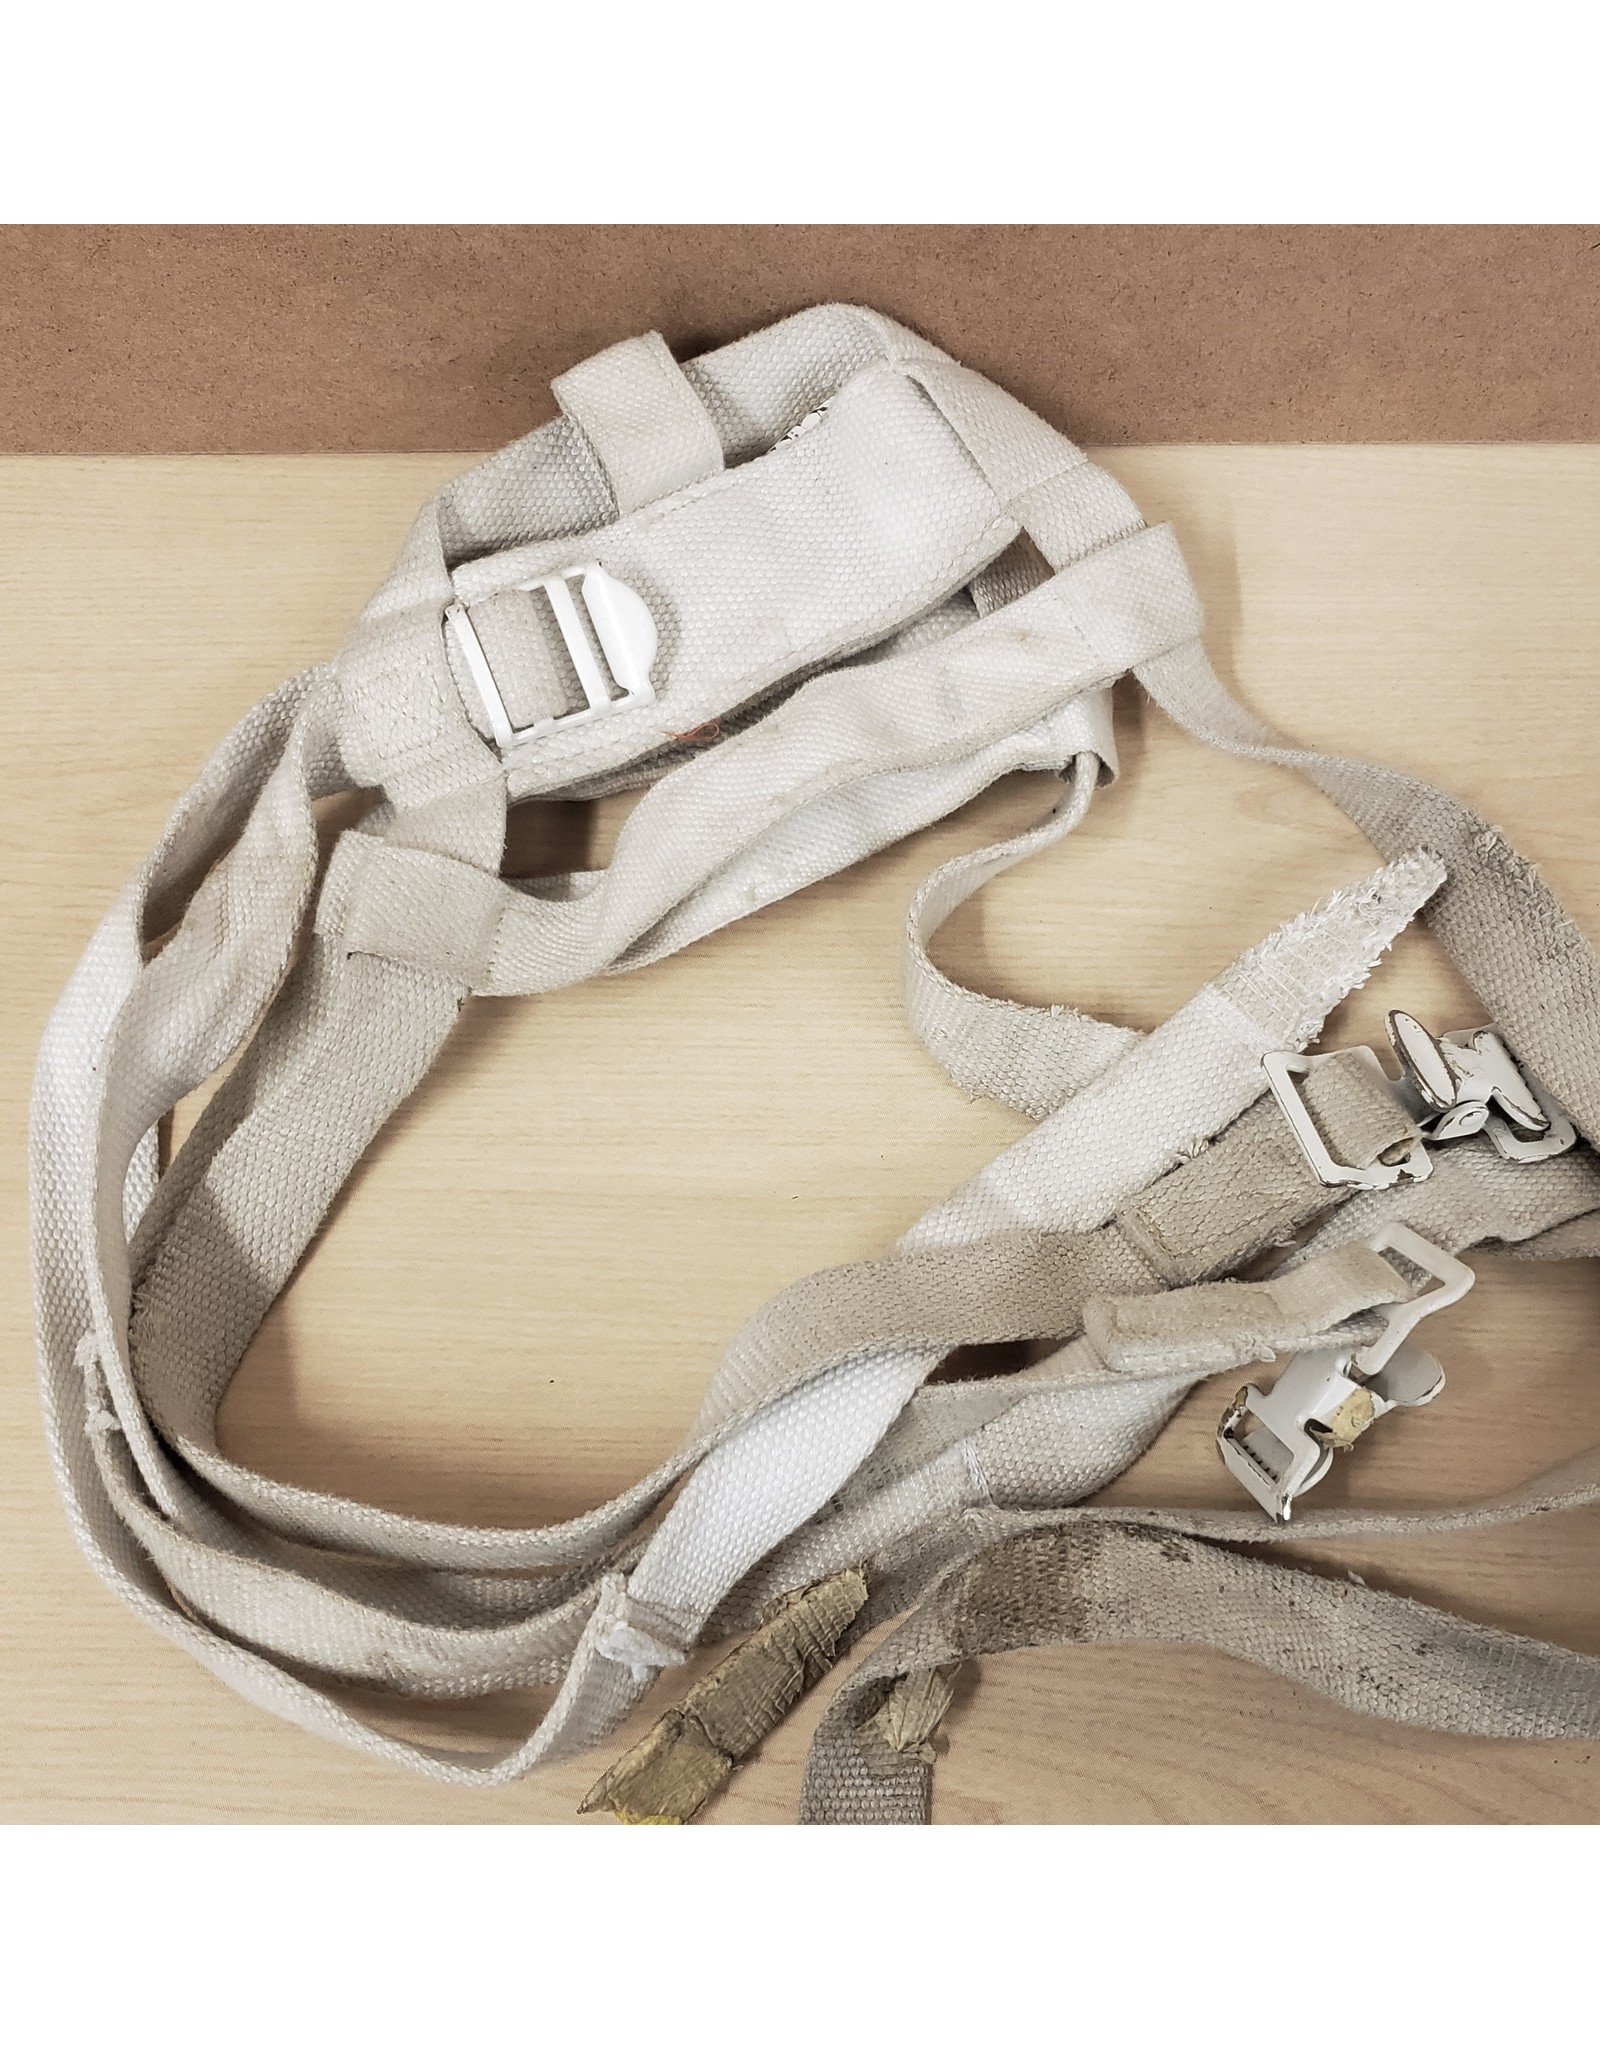 CANADIAN SURPLUS CANADIAN COTTON SNOWSHOE HARNESS USED